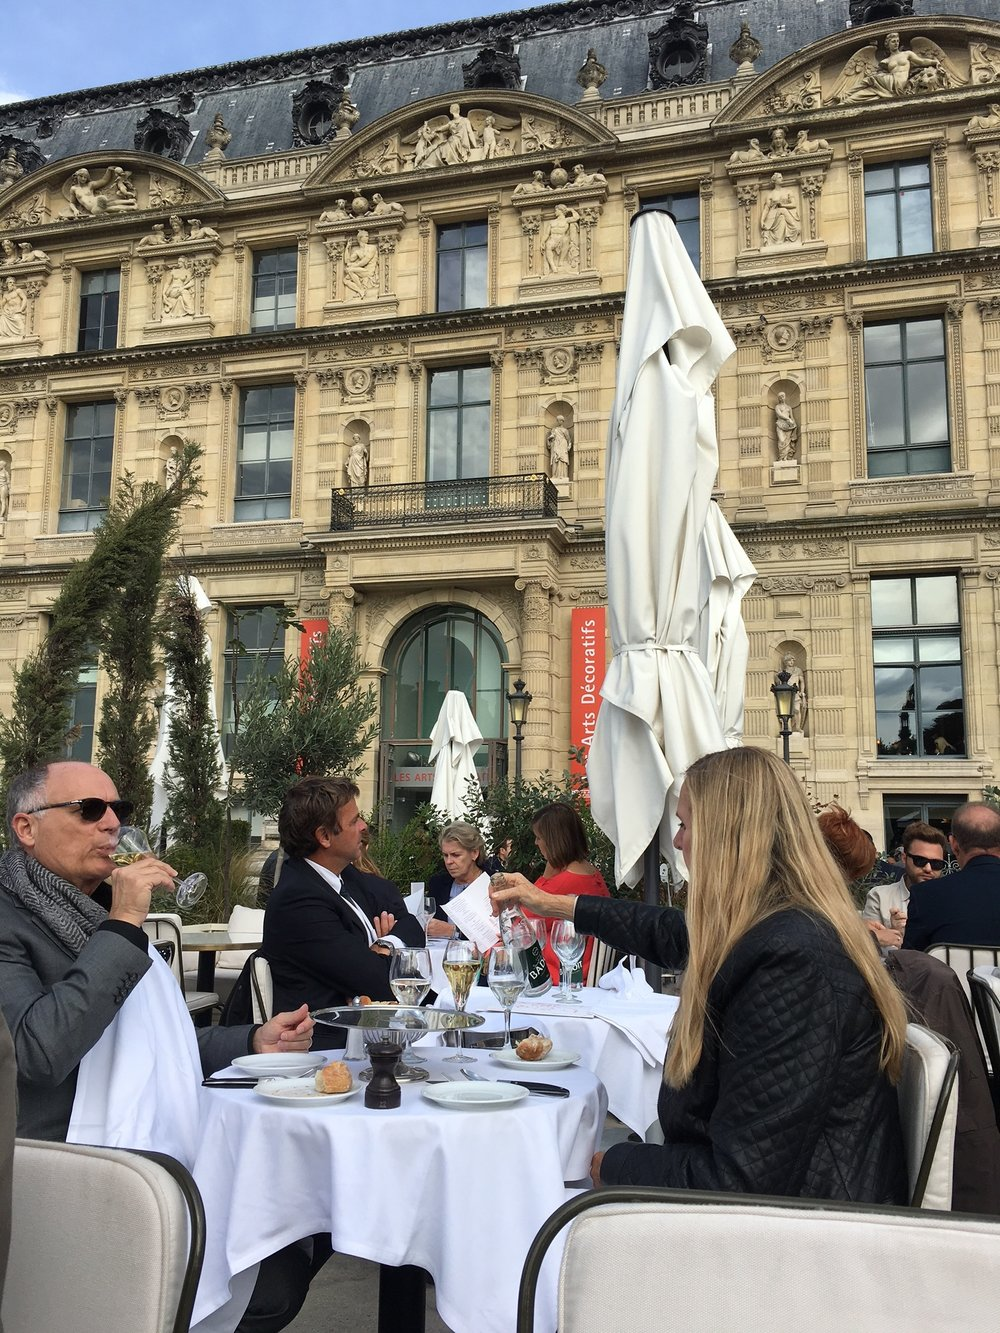 Lunching at LouLou, after the extraordinary Dior exhibit at the Musée des Arts Décoratifs.